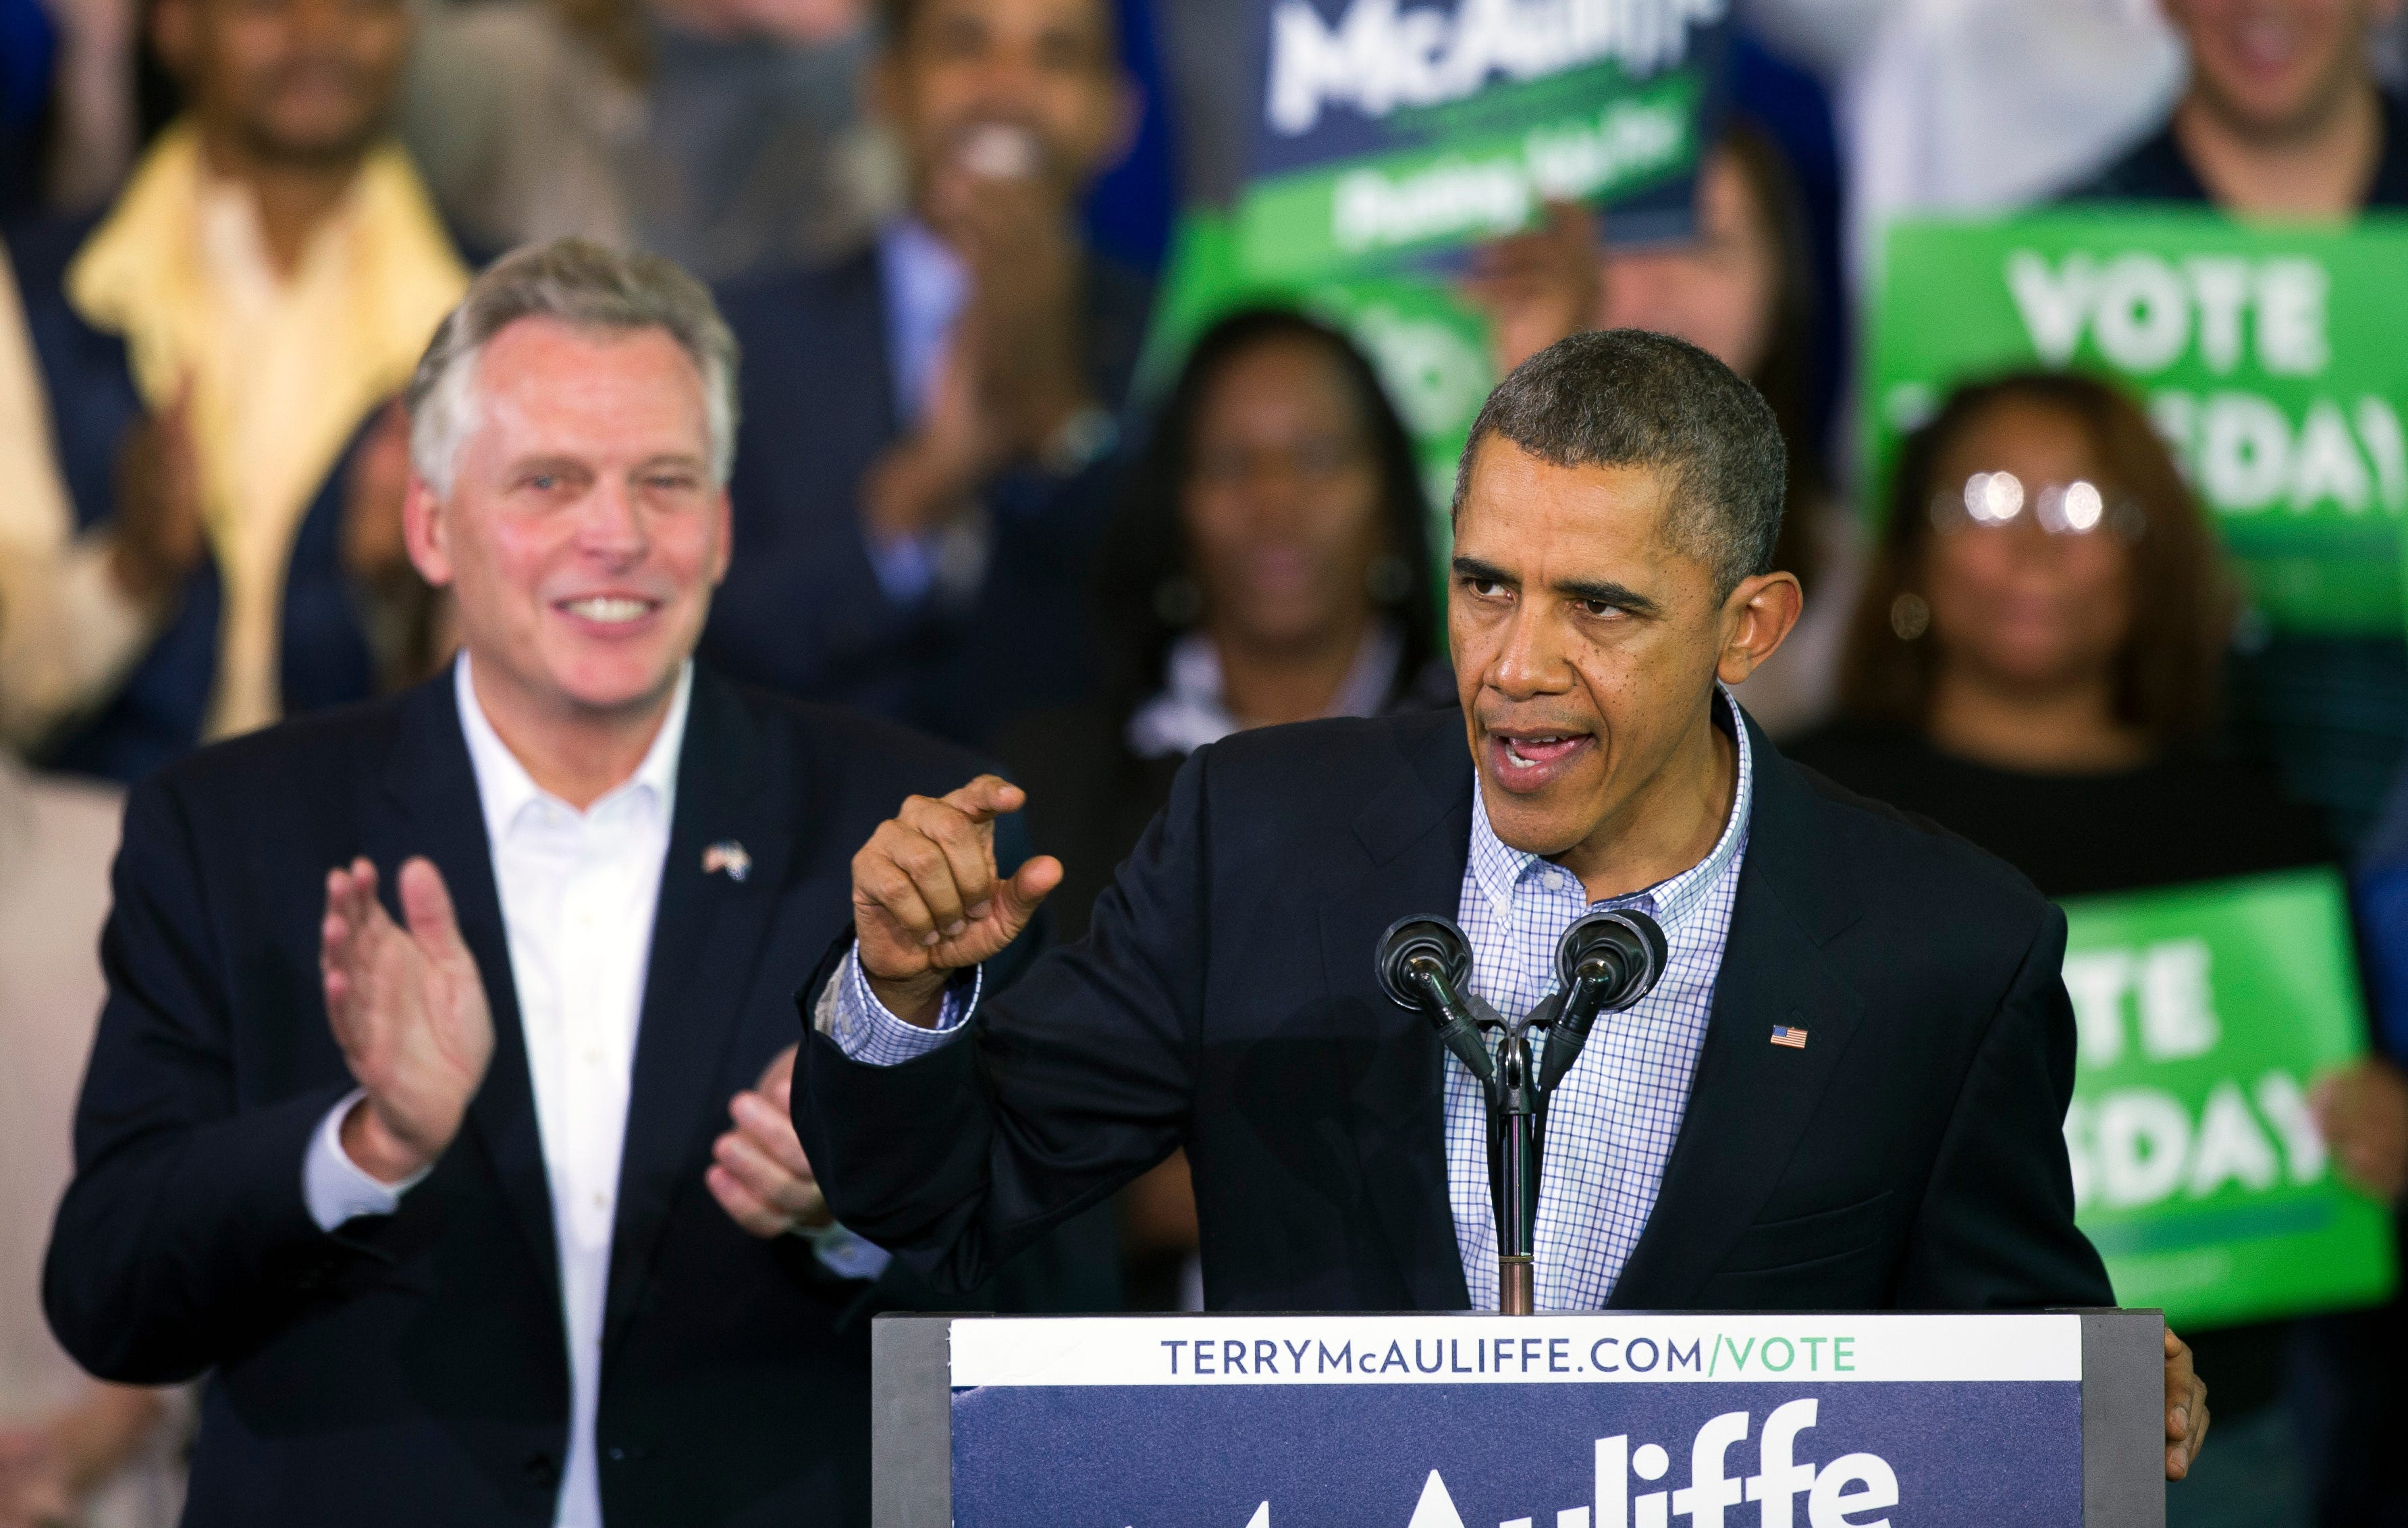 Barack Obama hits campaign trail in bellwether Virginia race as Democrats try to galvanize Black voters